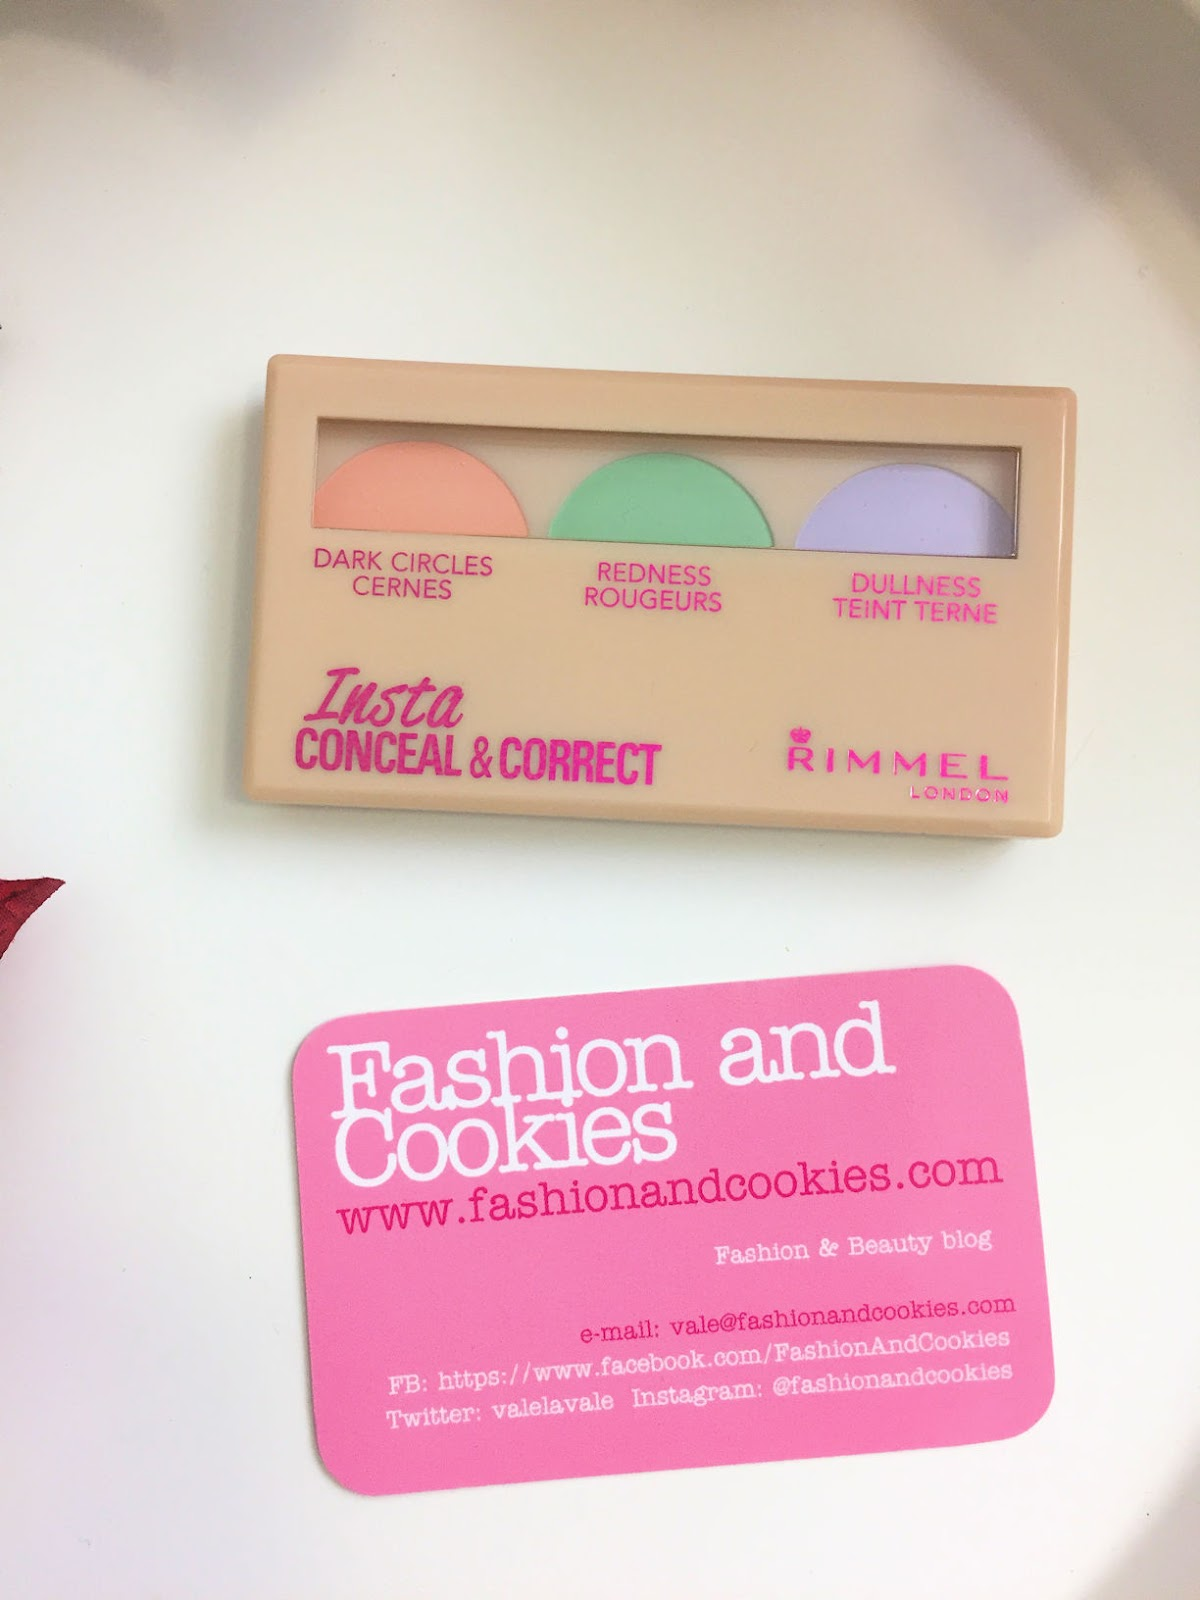 Rimmel Insta makeup per un viso a prova di selfie, conceal&correct review su Fashion and Cookies beauty blog, beauty blogger